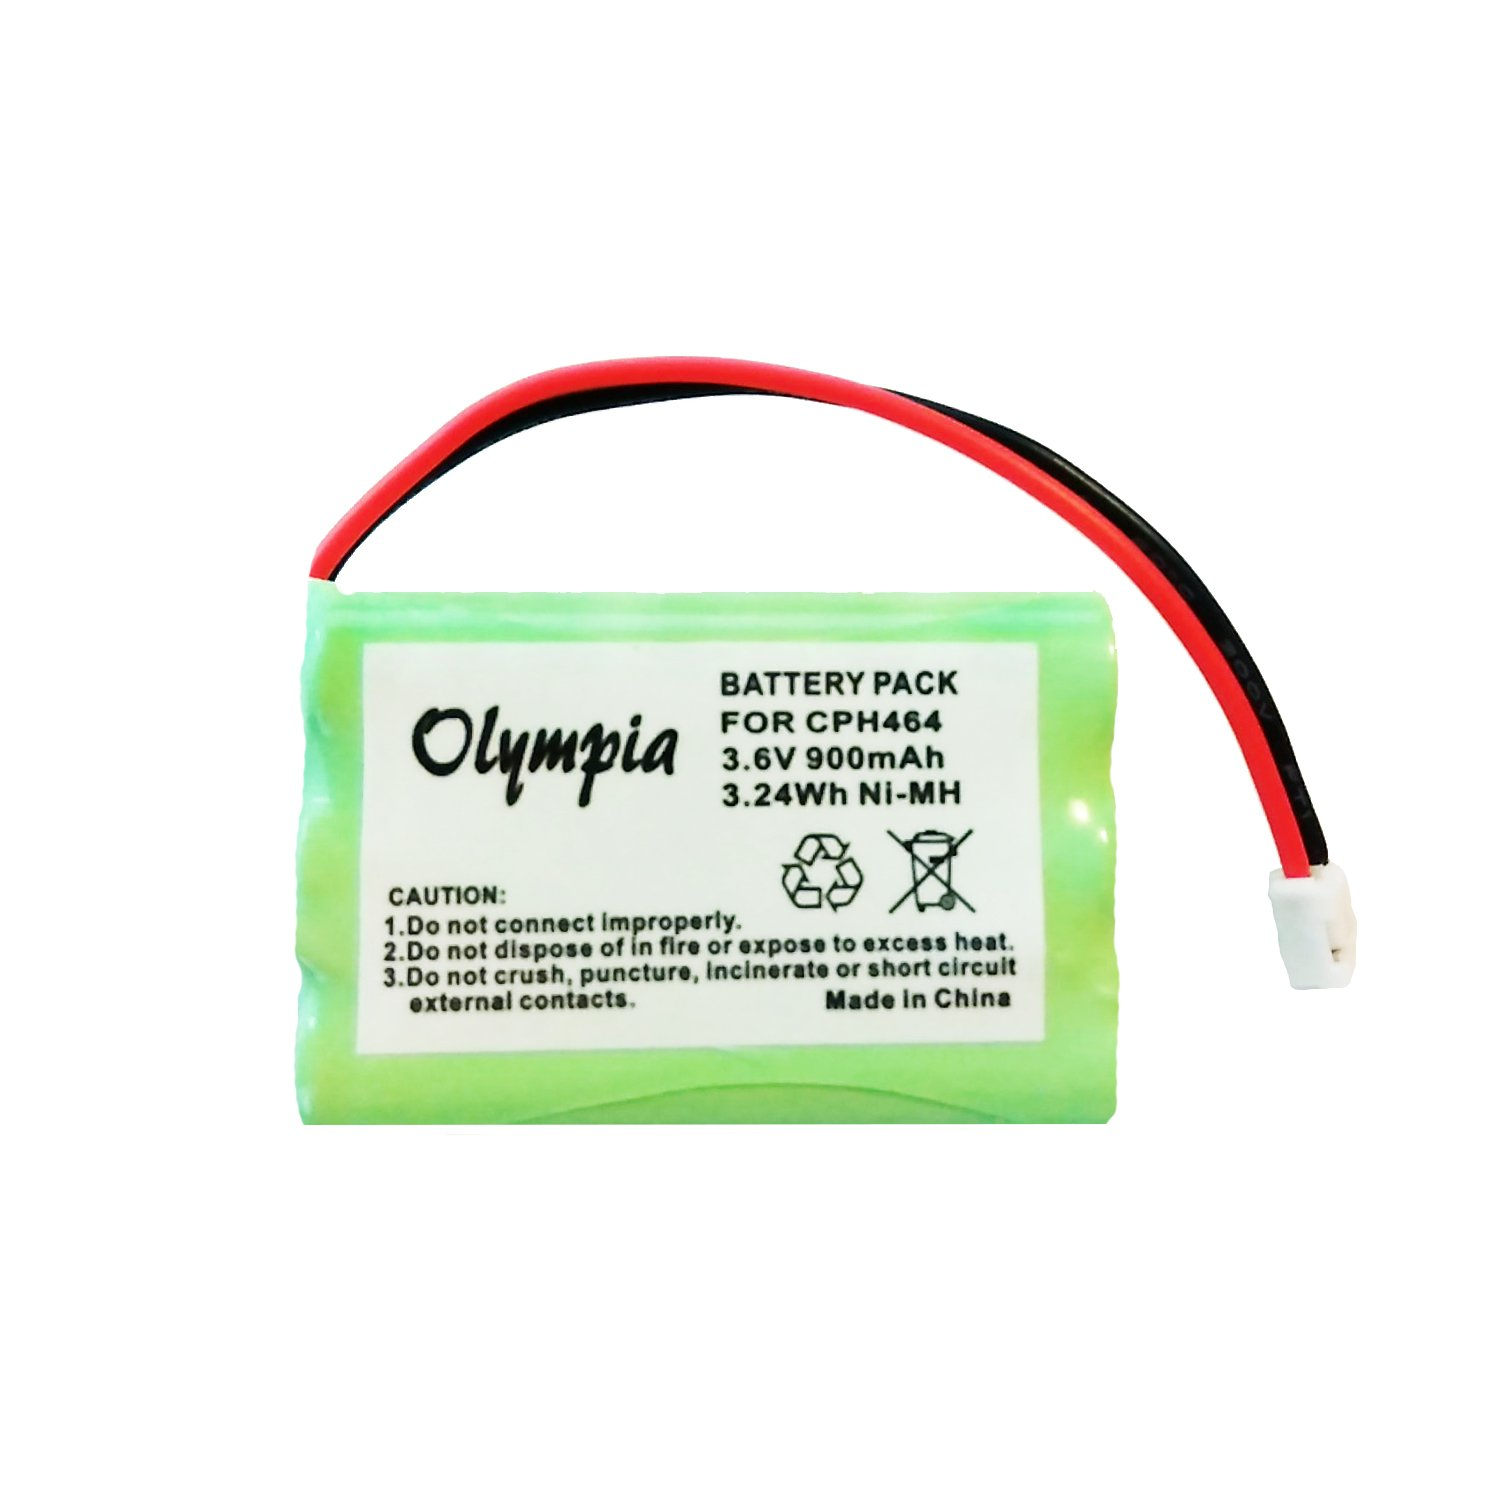 Motorola MBP36PU Battery - Replacement Battery for Motorola Baby Monitor (900mAh, 3.6V, NI-MH) Olympia Battery CPH464-5